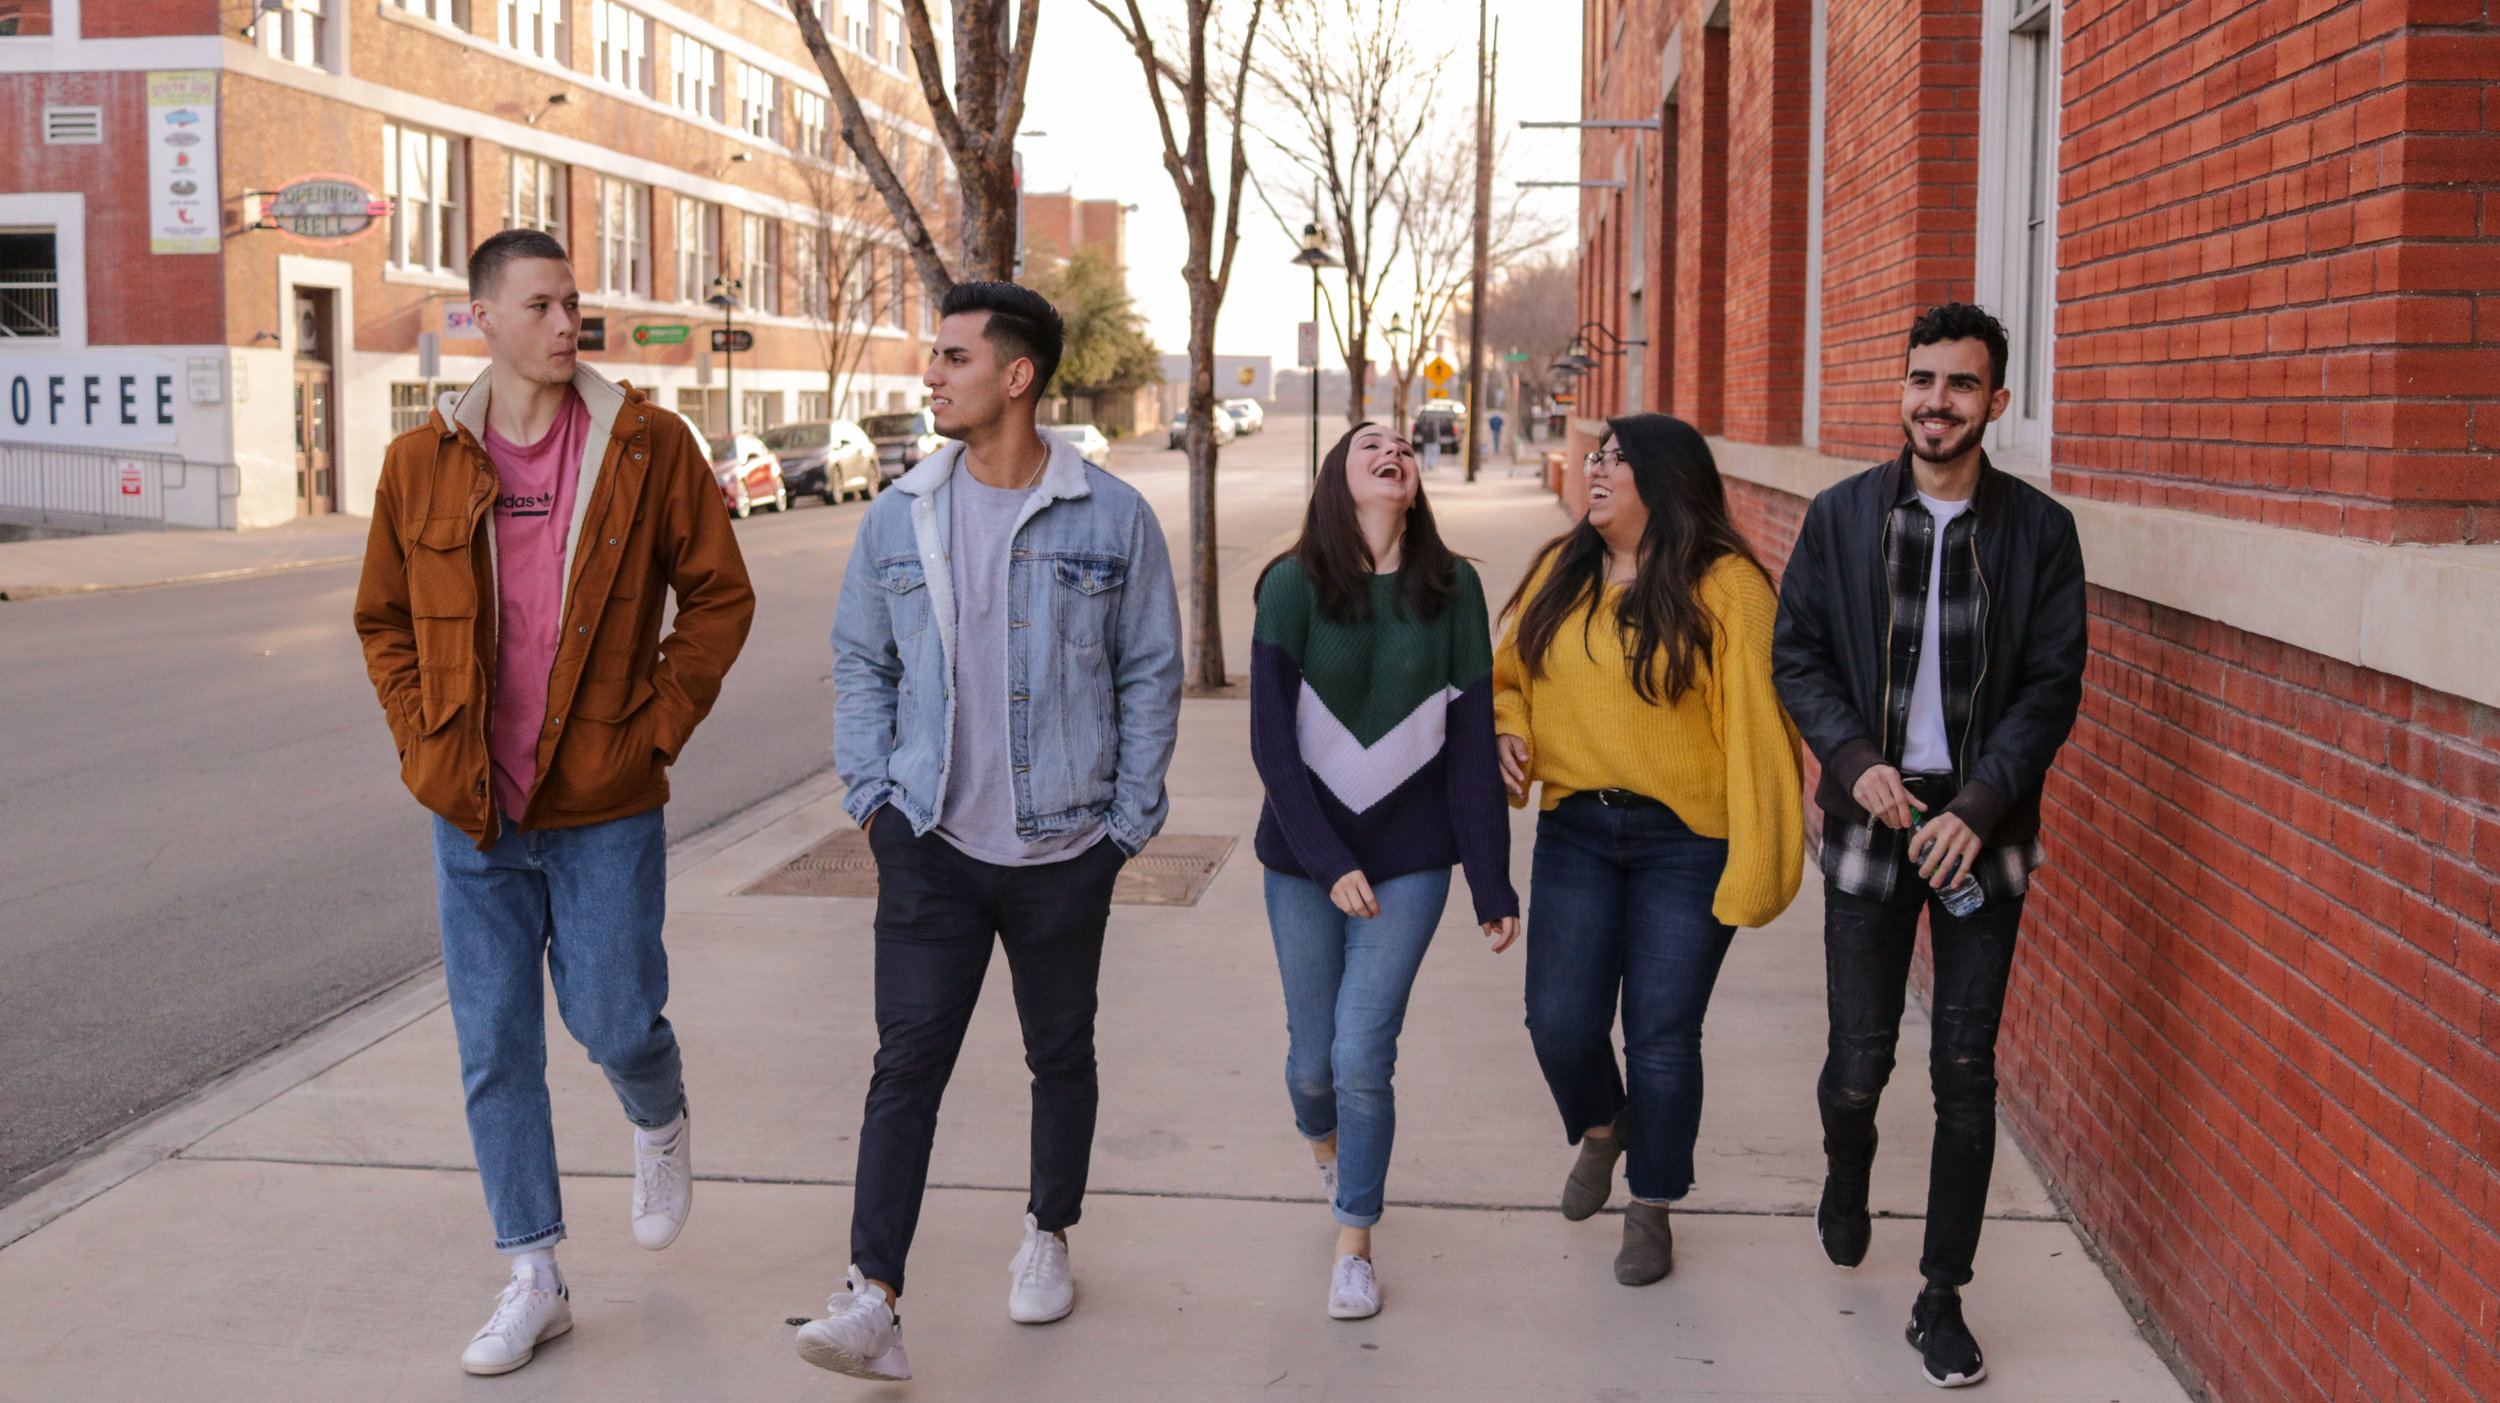 - OVER 80% OF COLLEGES FAIL TO CONVERT OR CONNECT WITH MORE THAN 60% OF ALL PROSPECTIVE STUDENT INQUIRIES, MISSING OUT ON 6 OF EVERY 10 POTENTIAL NEW STUDENT ENROLLMENTS.